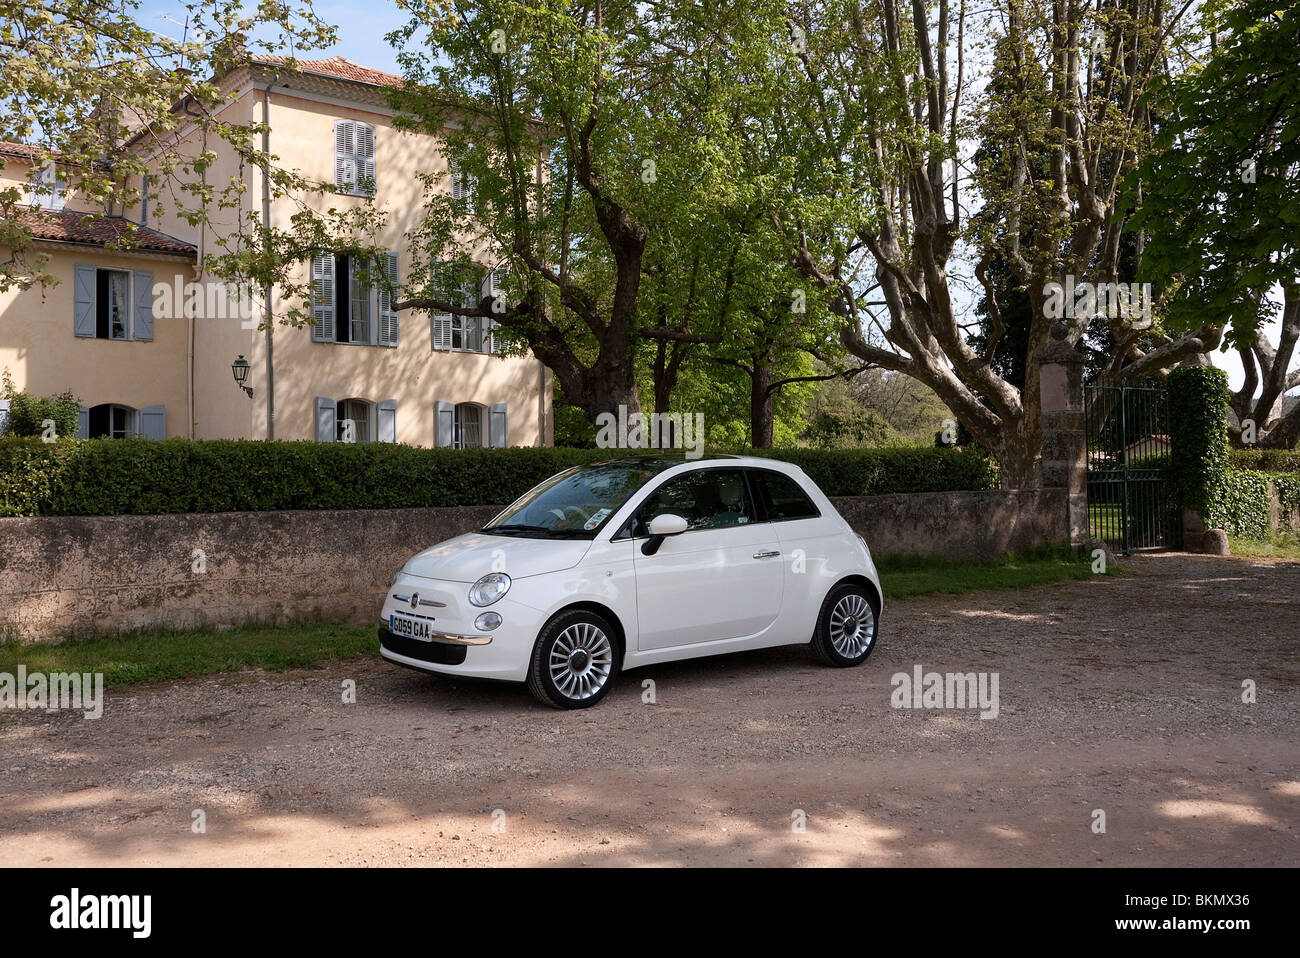 fiat 500 parked by a chateau la lieue provence in france stock photo royalty free image. Black Bedroom Furniture Sets. Home Design Ideas